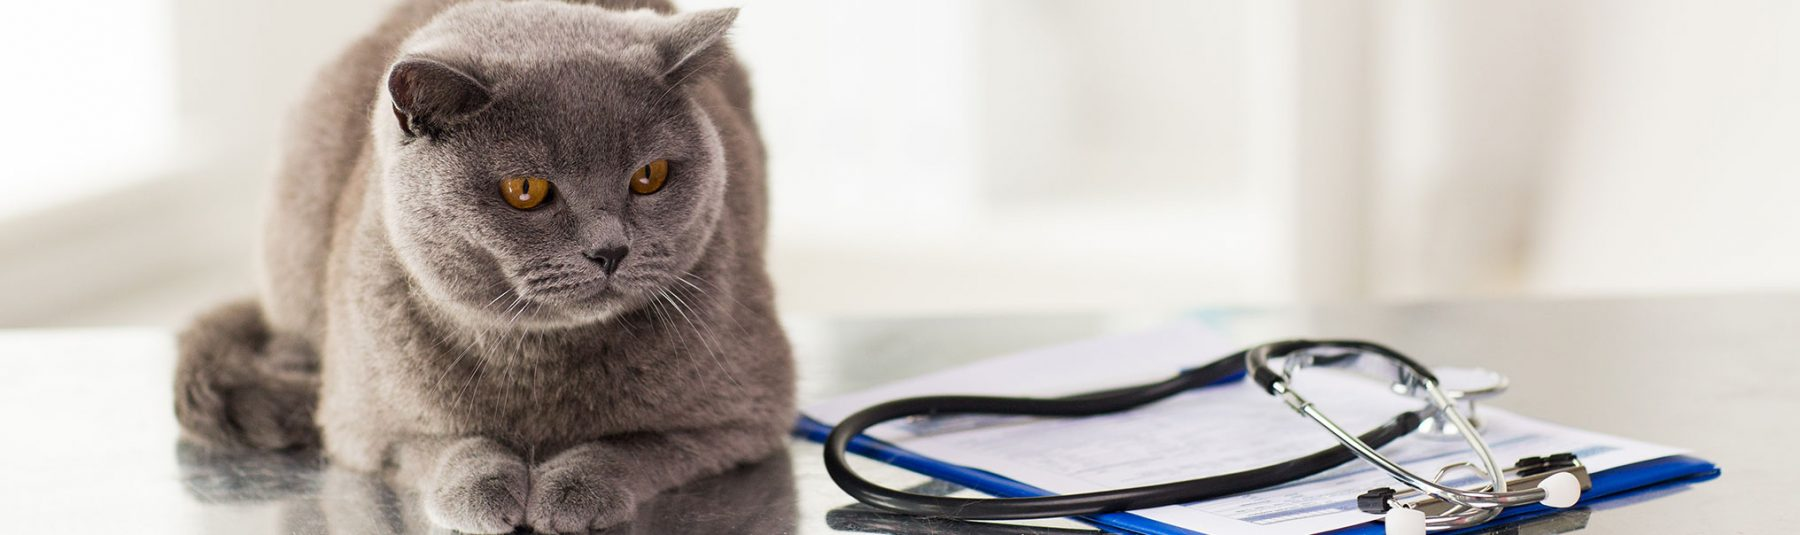 Cat lying beside a stethoscope and clipboard